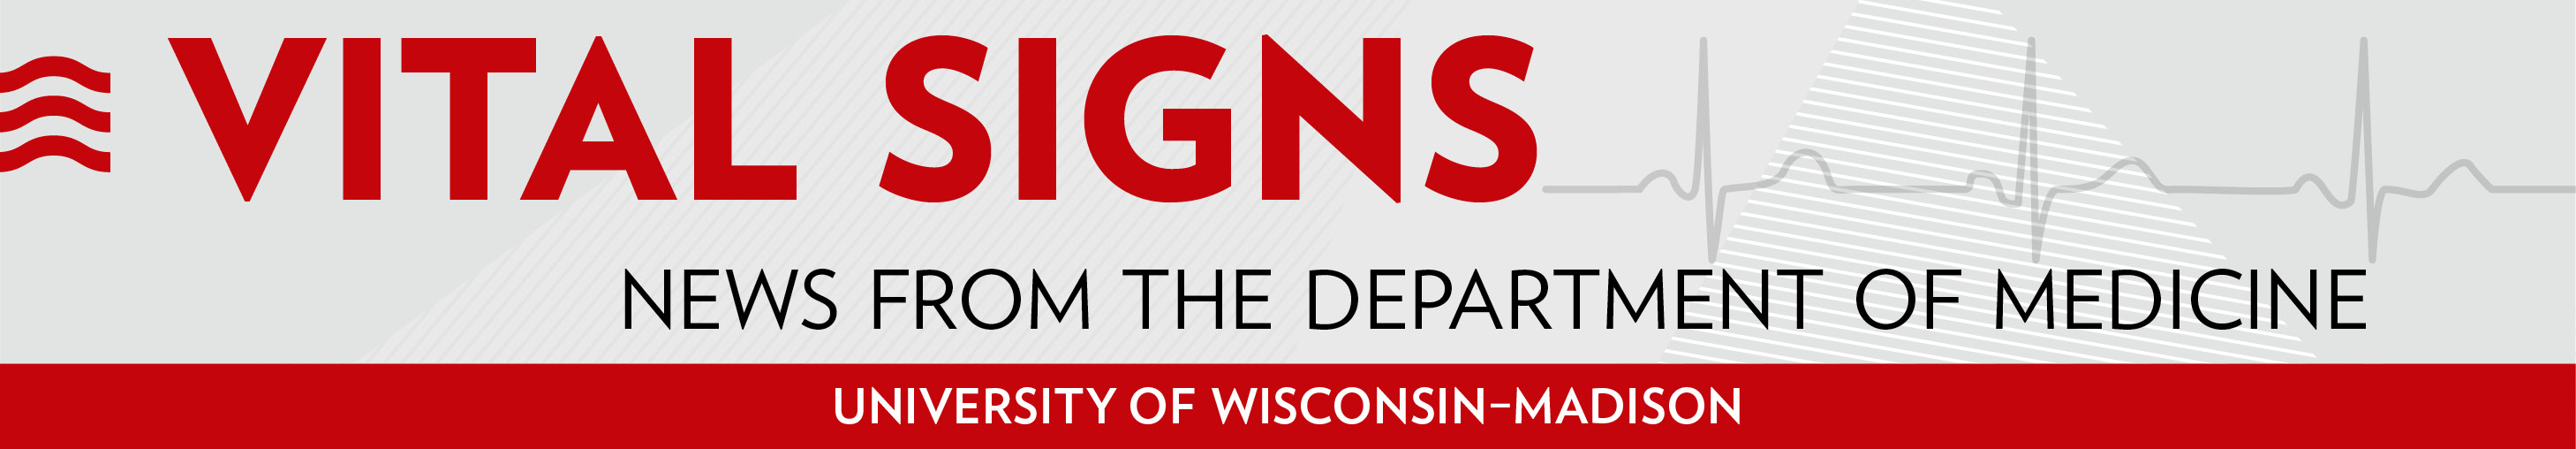 Vital Signs - News from the Department of Medicine - University of Wisconsin-Madison